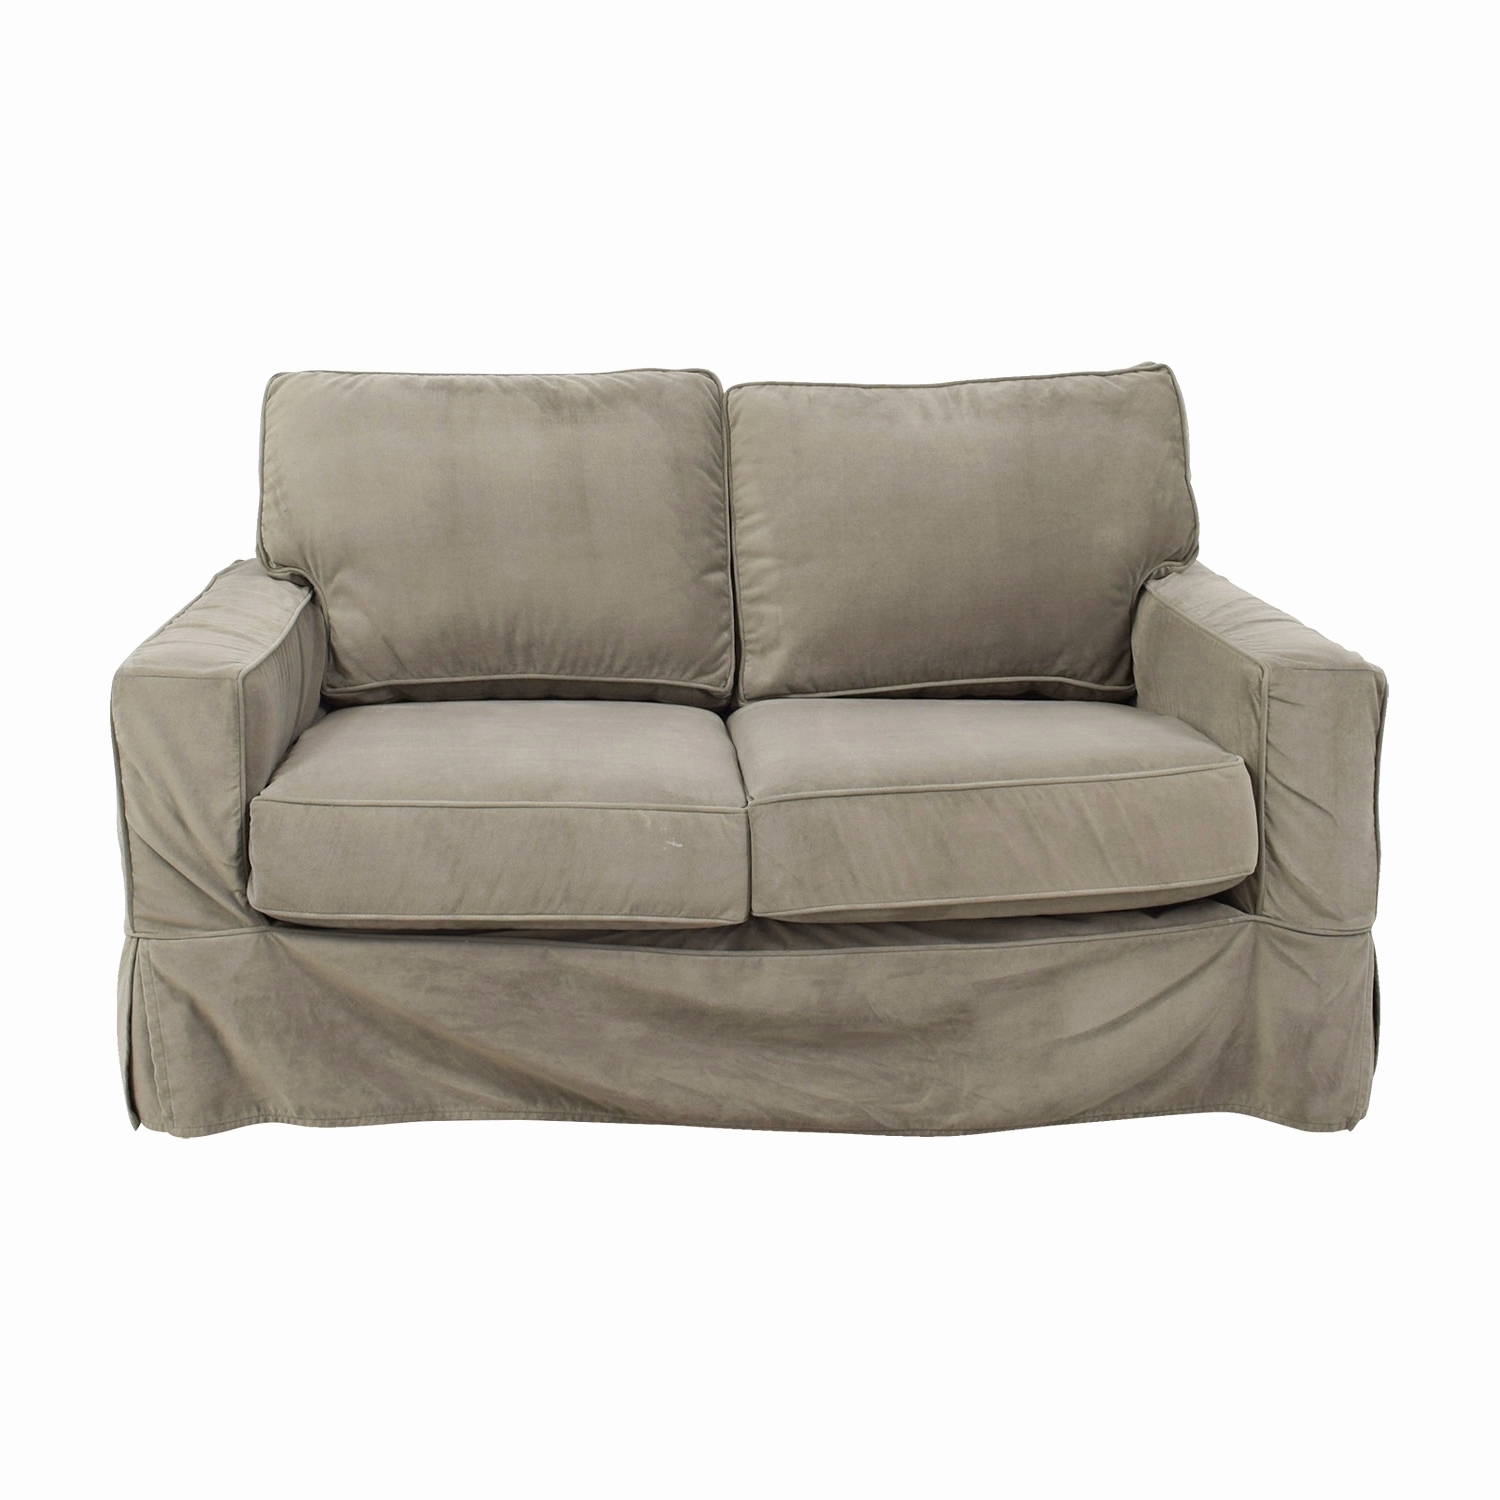 Sofa : Find Small Sectional Sofas For Small Spaces Lovely 100 Sofa Inside Widely Used Small Sectional Sofas (View 14 of 20)